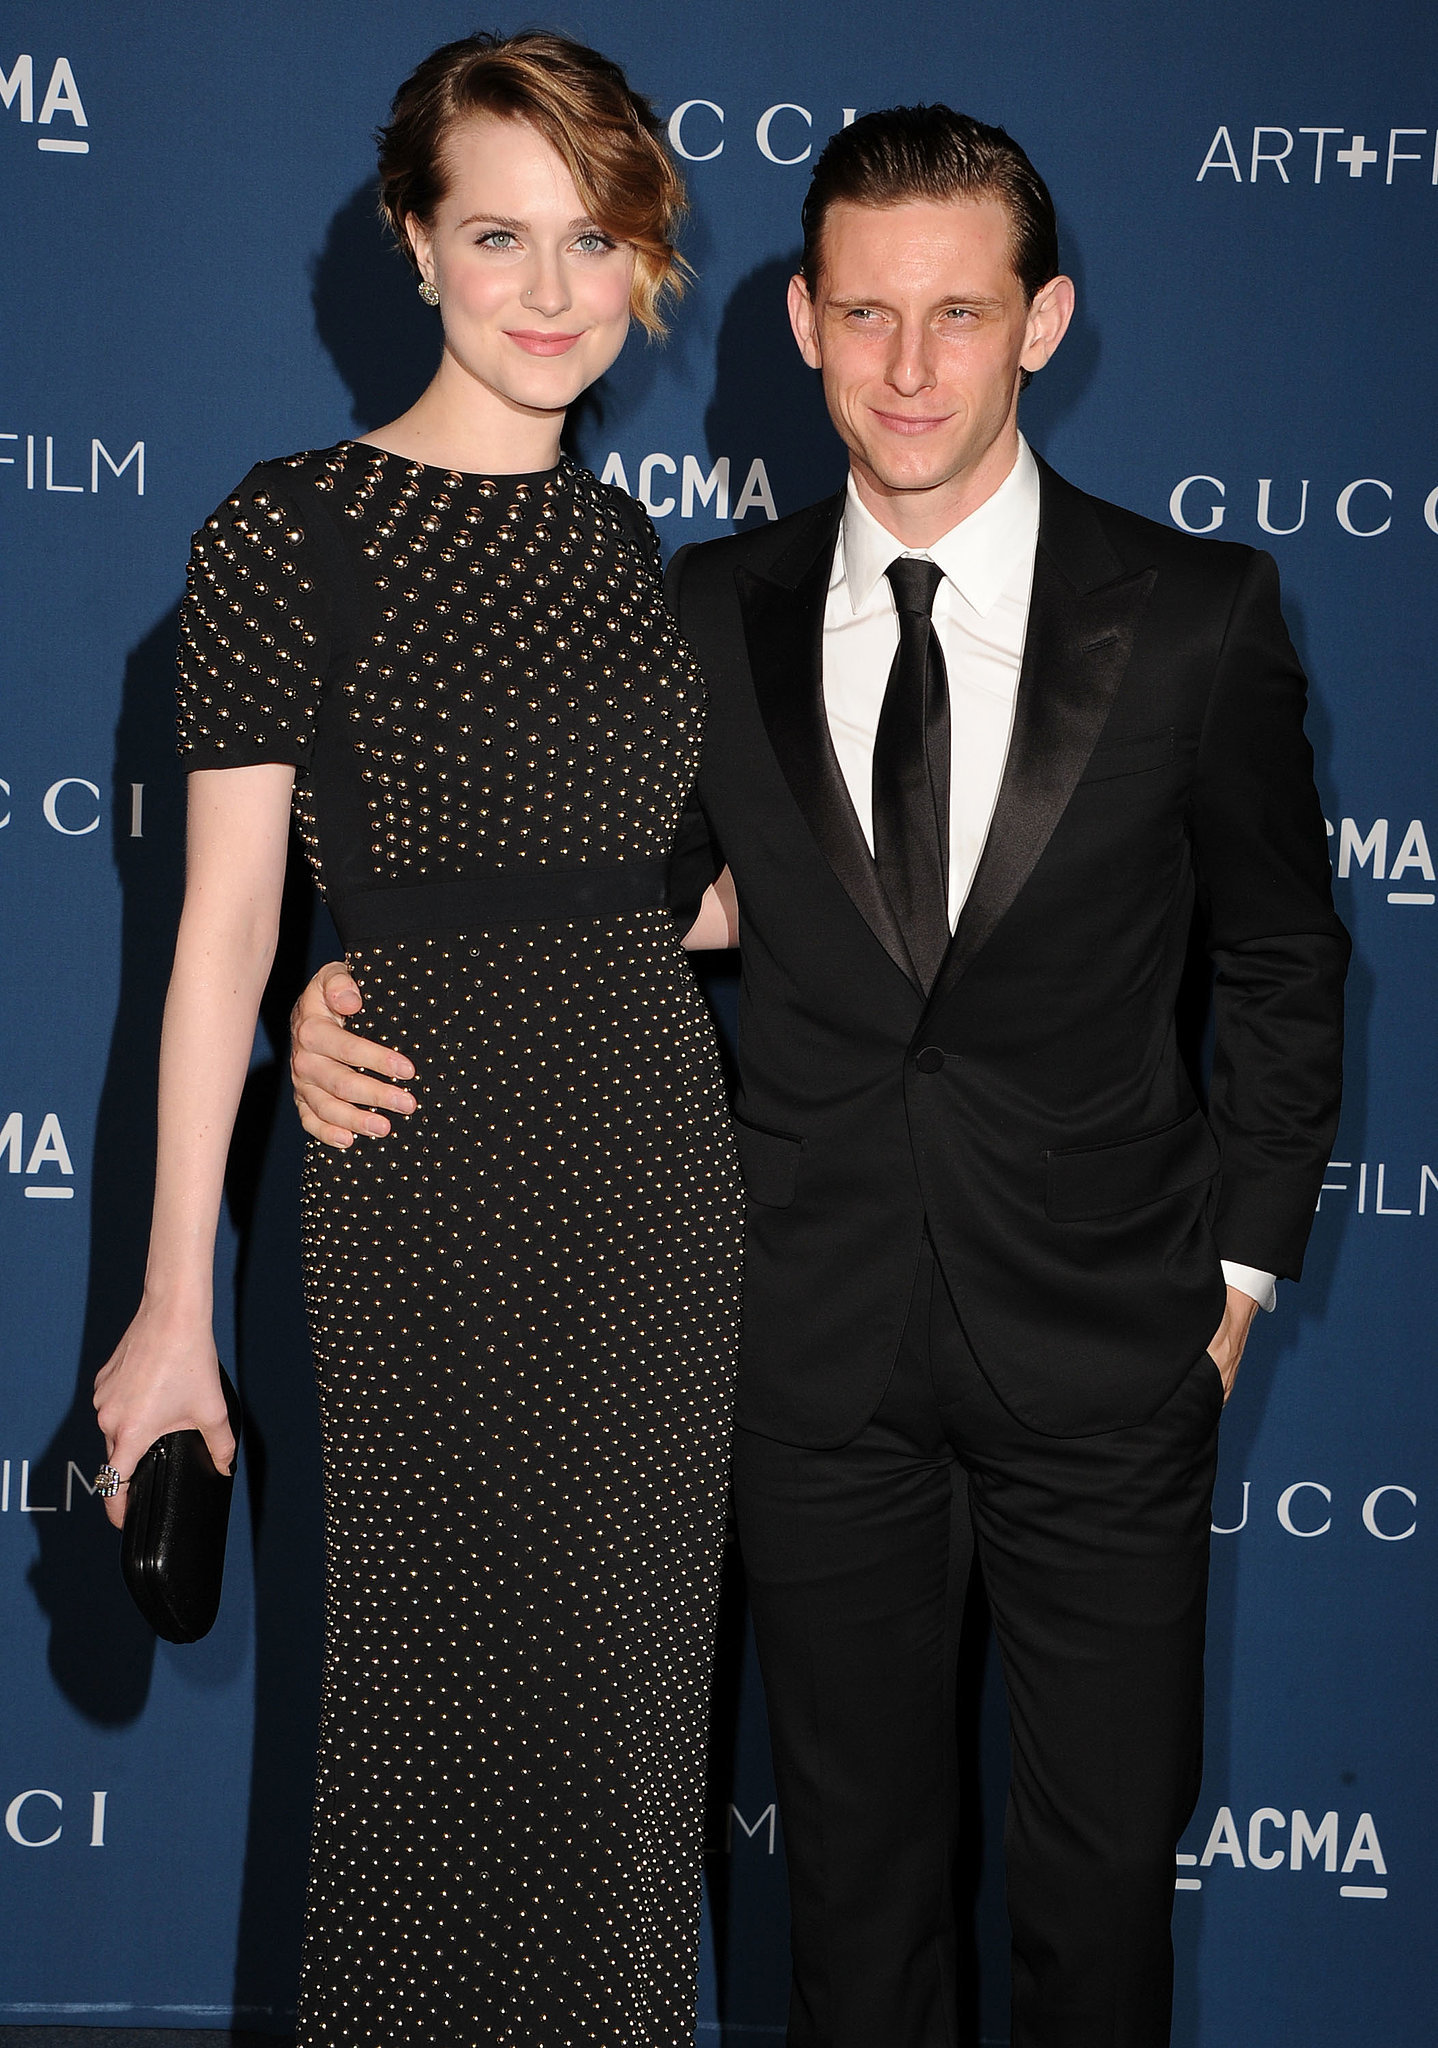 Evan Rachel Wood and Jamie Bell - Fashion Style Trends 2017